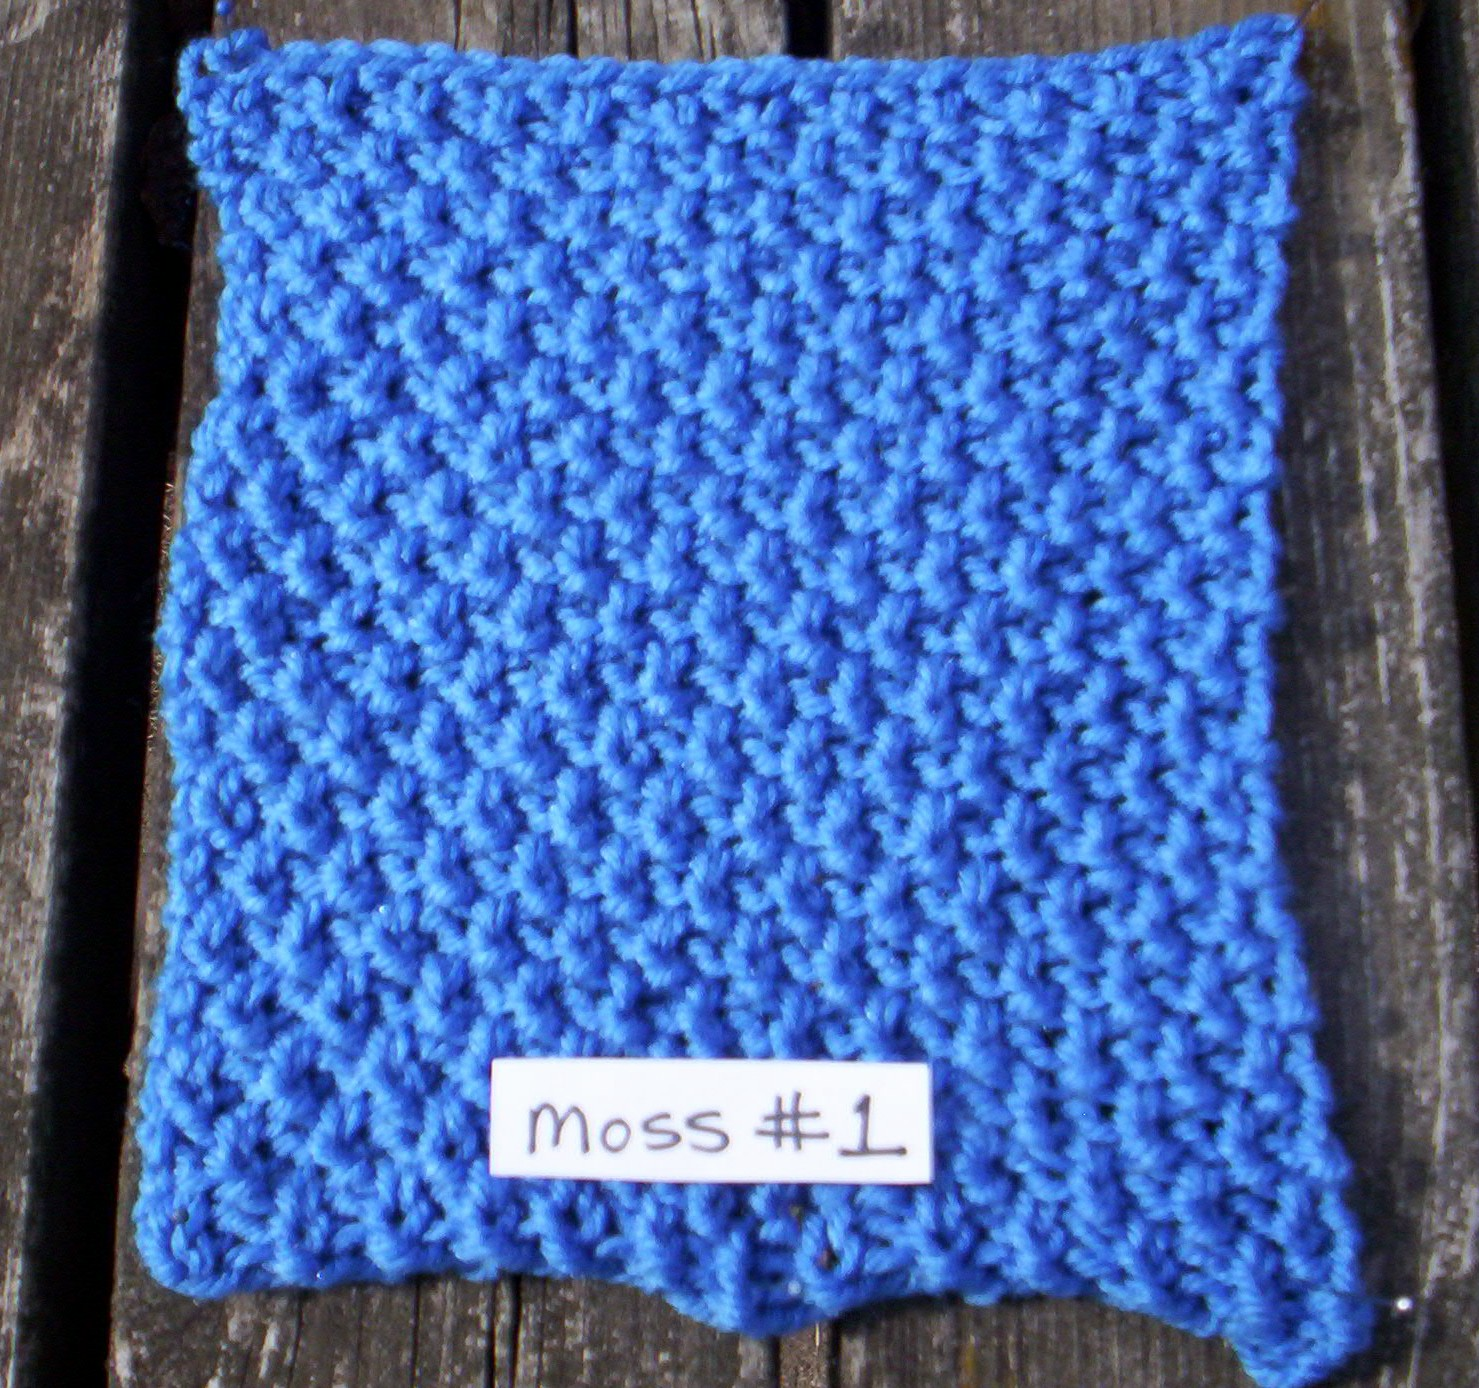 Knitting Stitches Moss Stitch : Moss #1